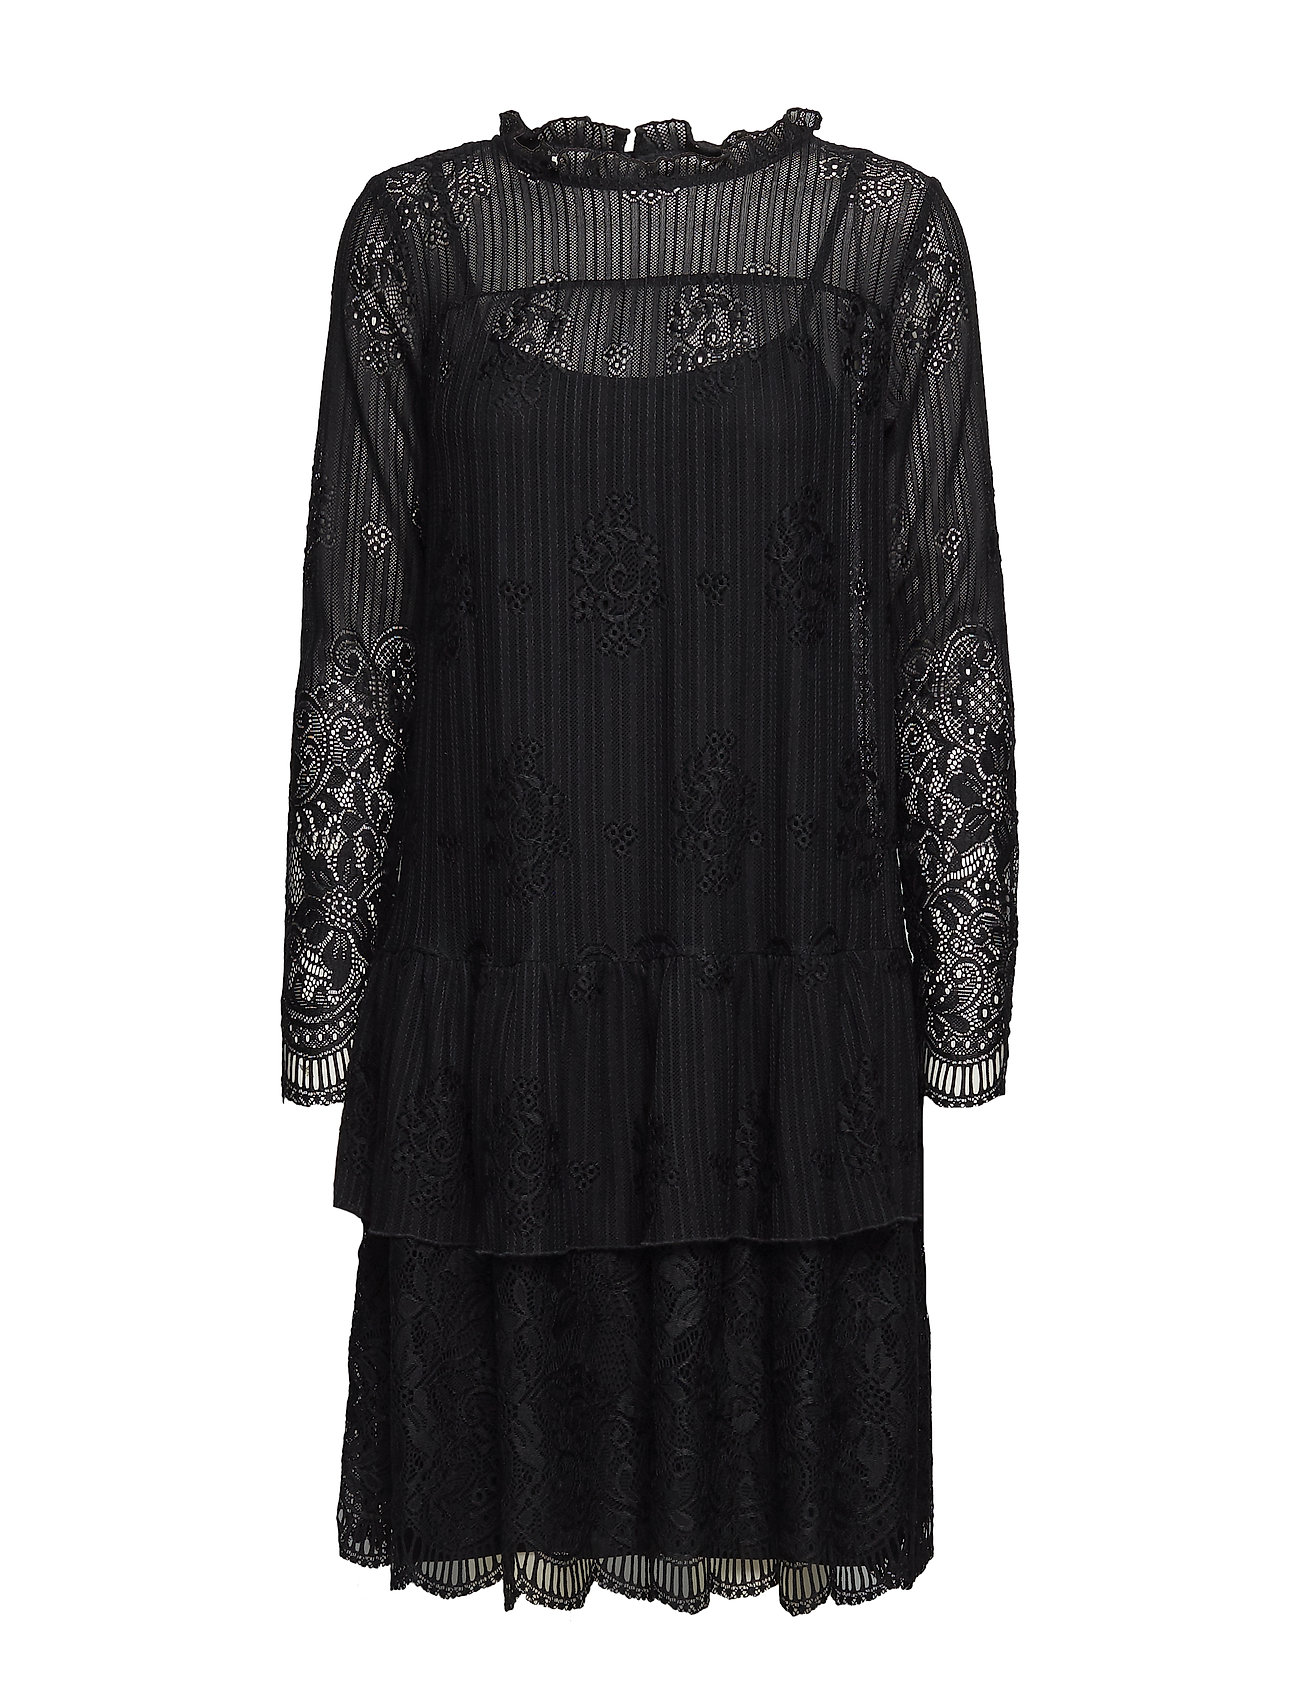 Soft Rebels Joy Layer Dress - 001 BLACK